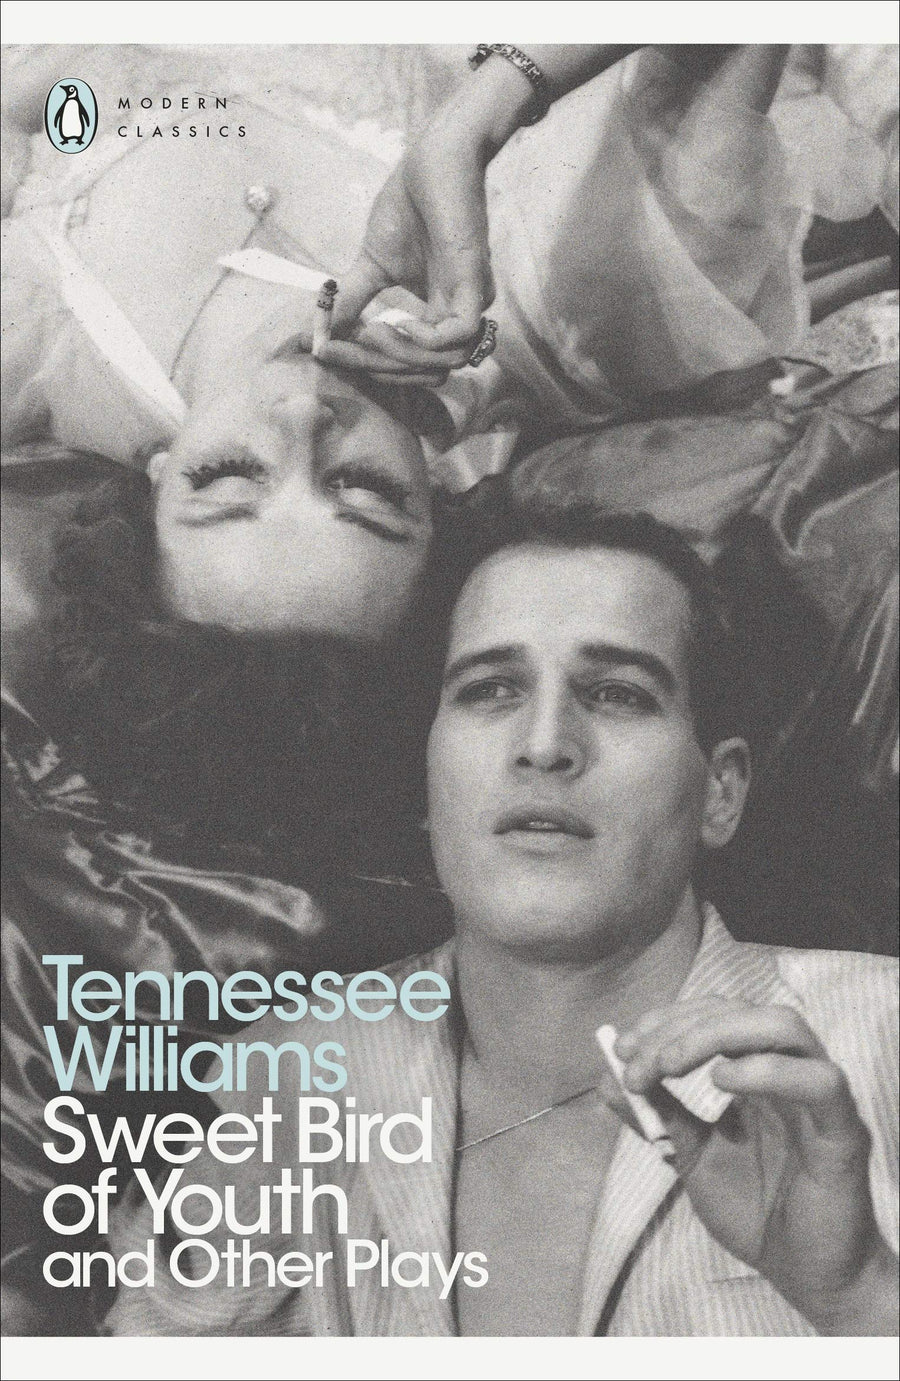 Tennessee Williams: Sweet Bird of Youth and Other Plays